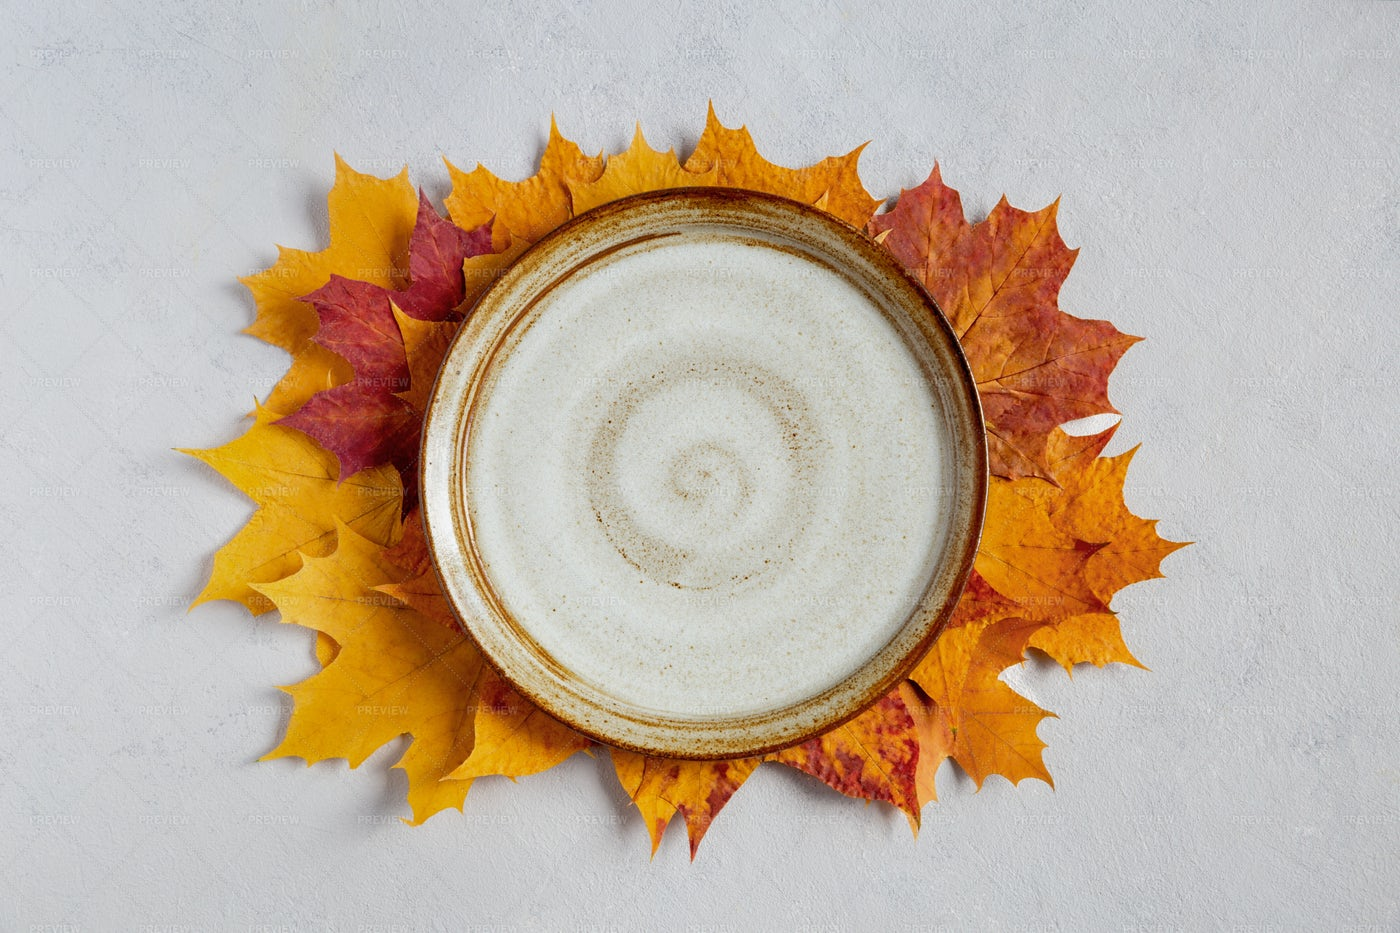 Empty Plate In Fall: Stock Photos